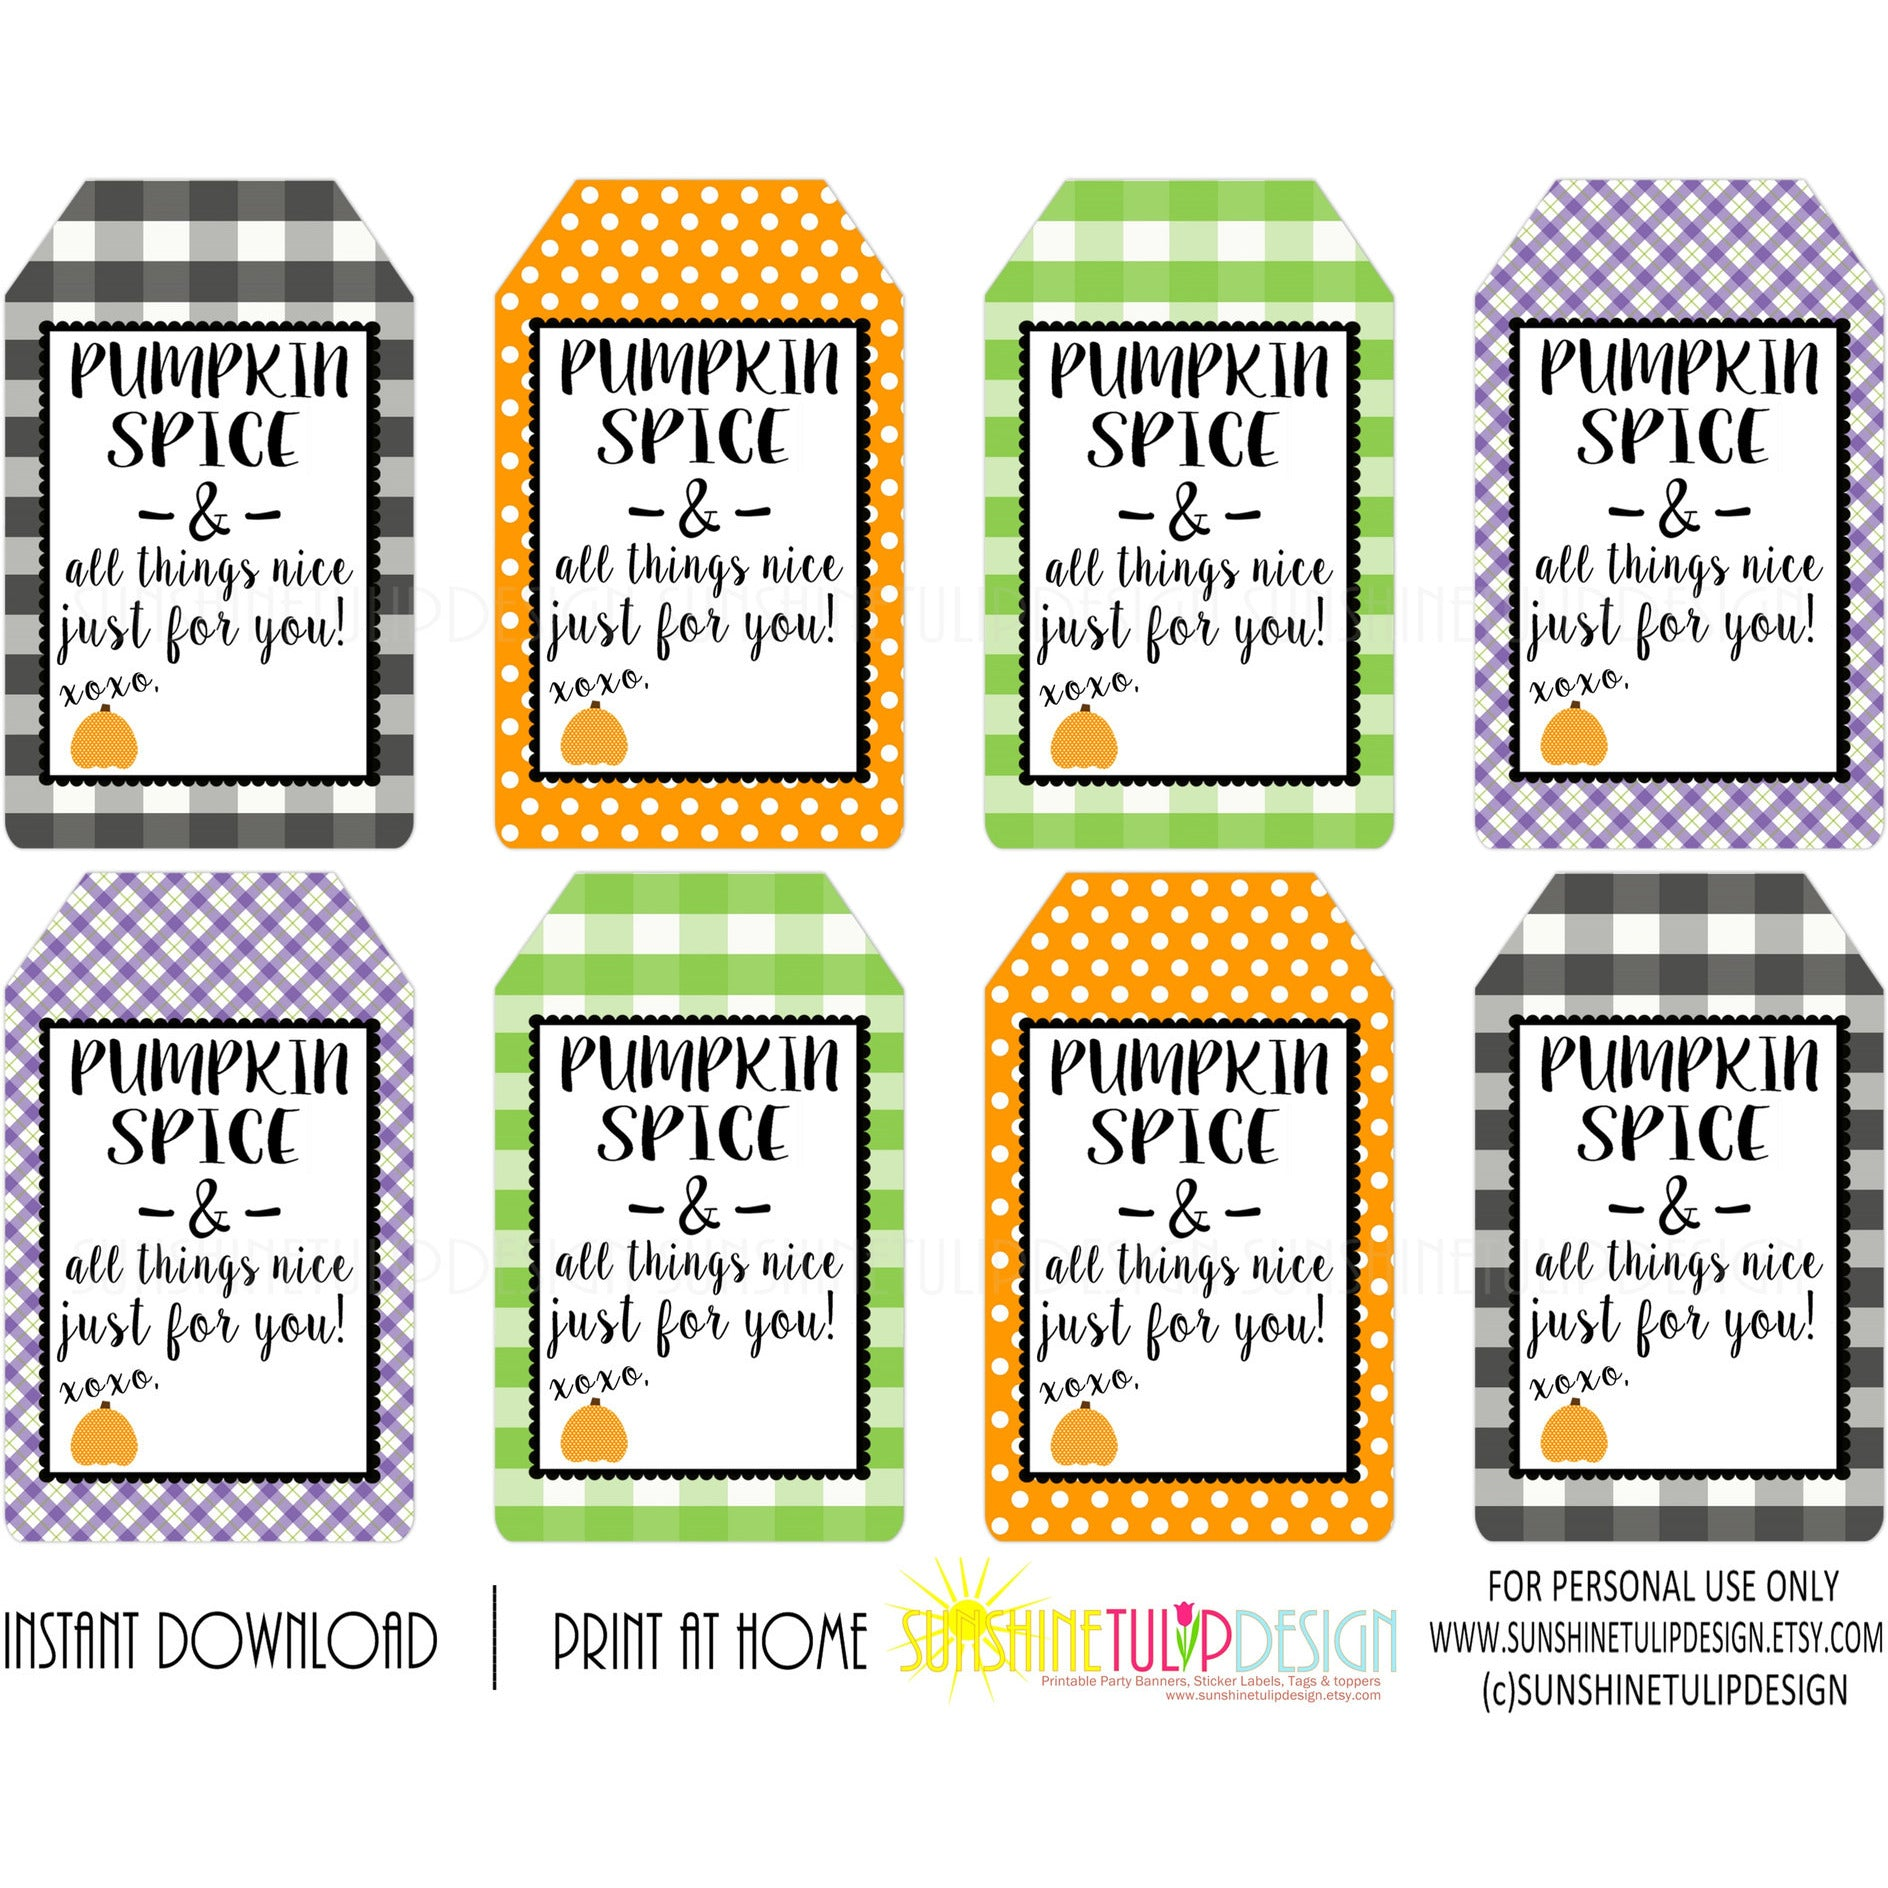 photograph about Printable Halloween Tag identify Pumpkin Spice Something Good Tags, Printable Instructor Appreciation HALLOWEEN tags, Pumpkin Spice Reward Tags by means of SUNSHINETULIPDESIGN